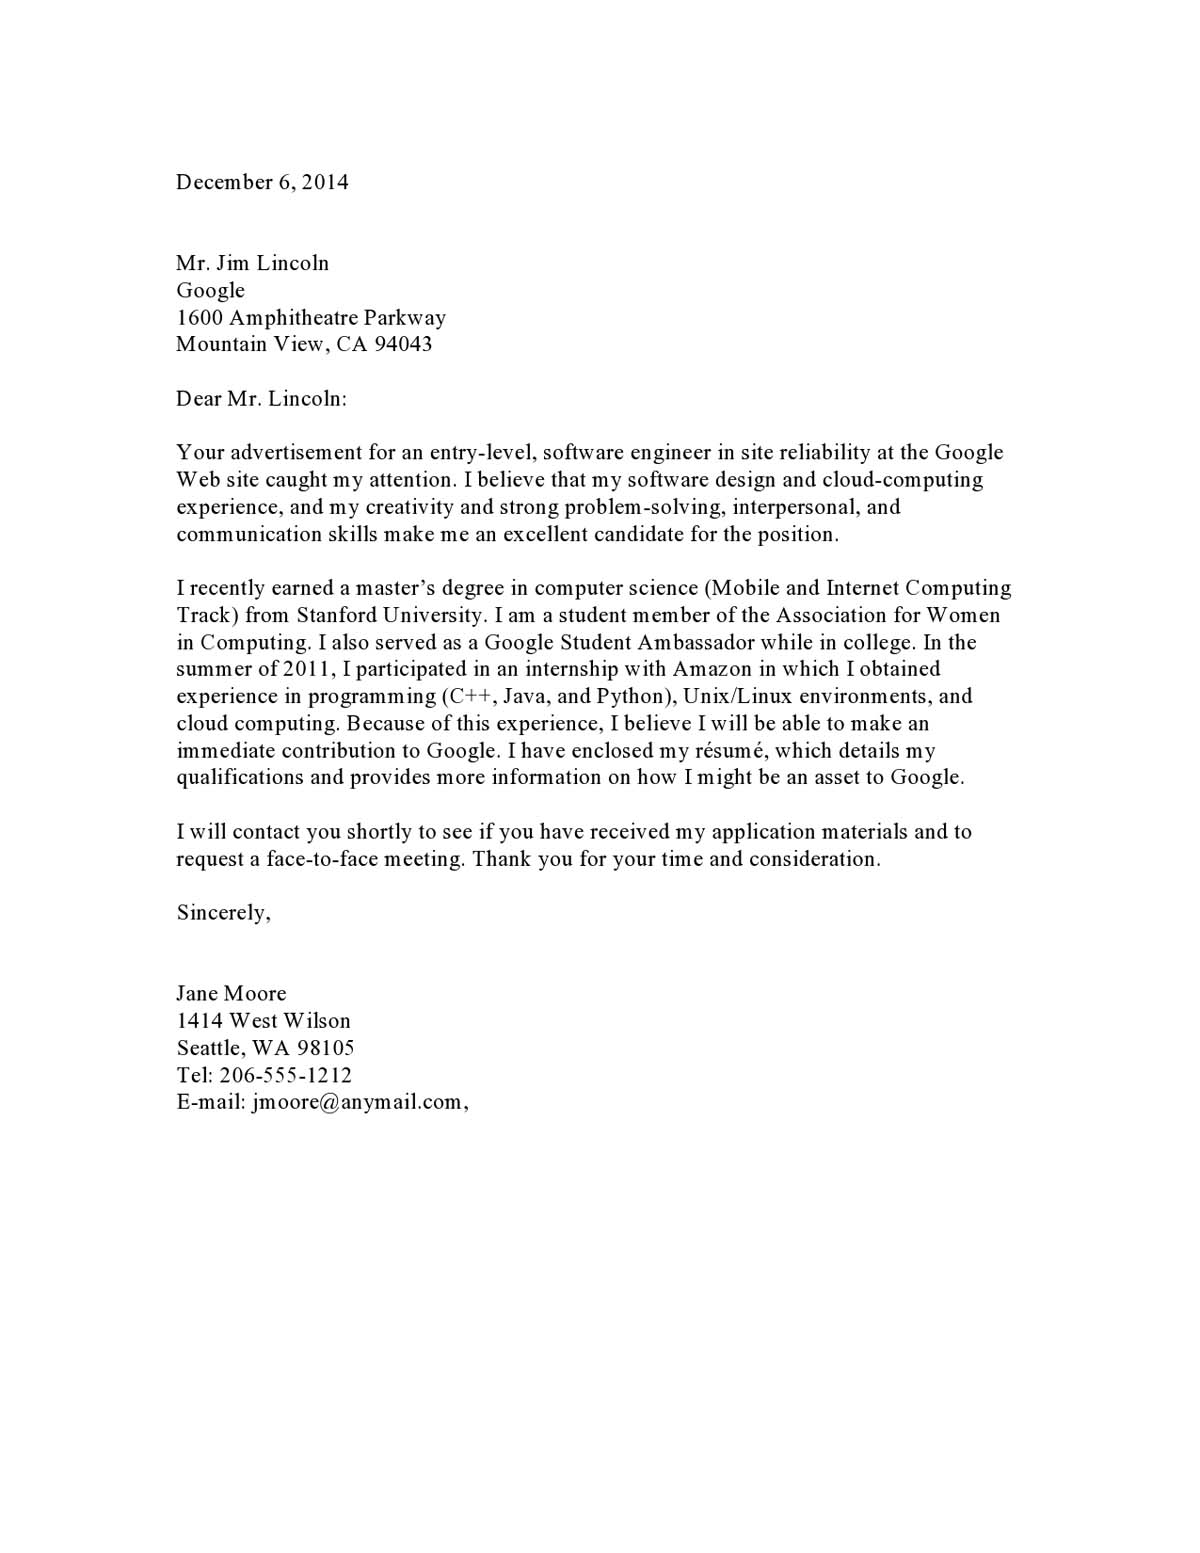 Cover Letter Template For Internship from media2.vault.com